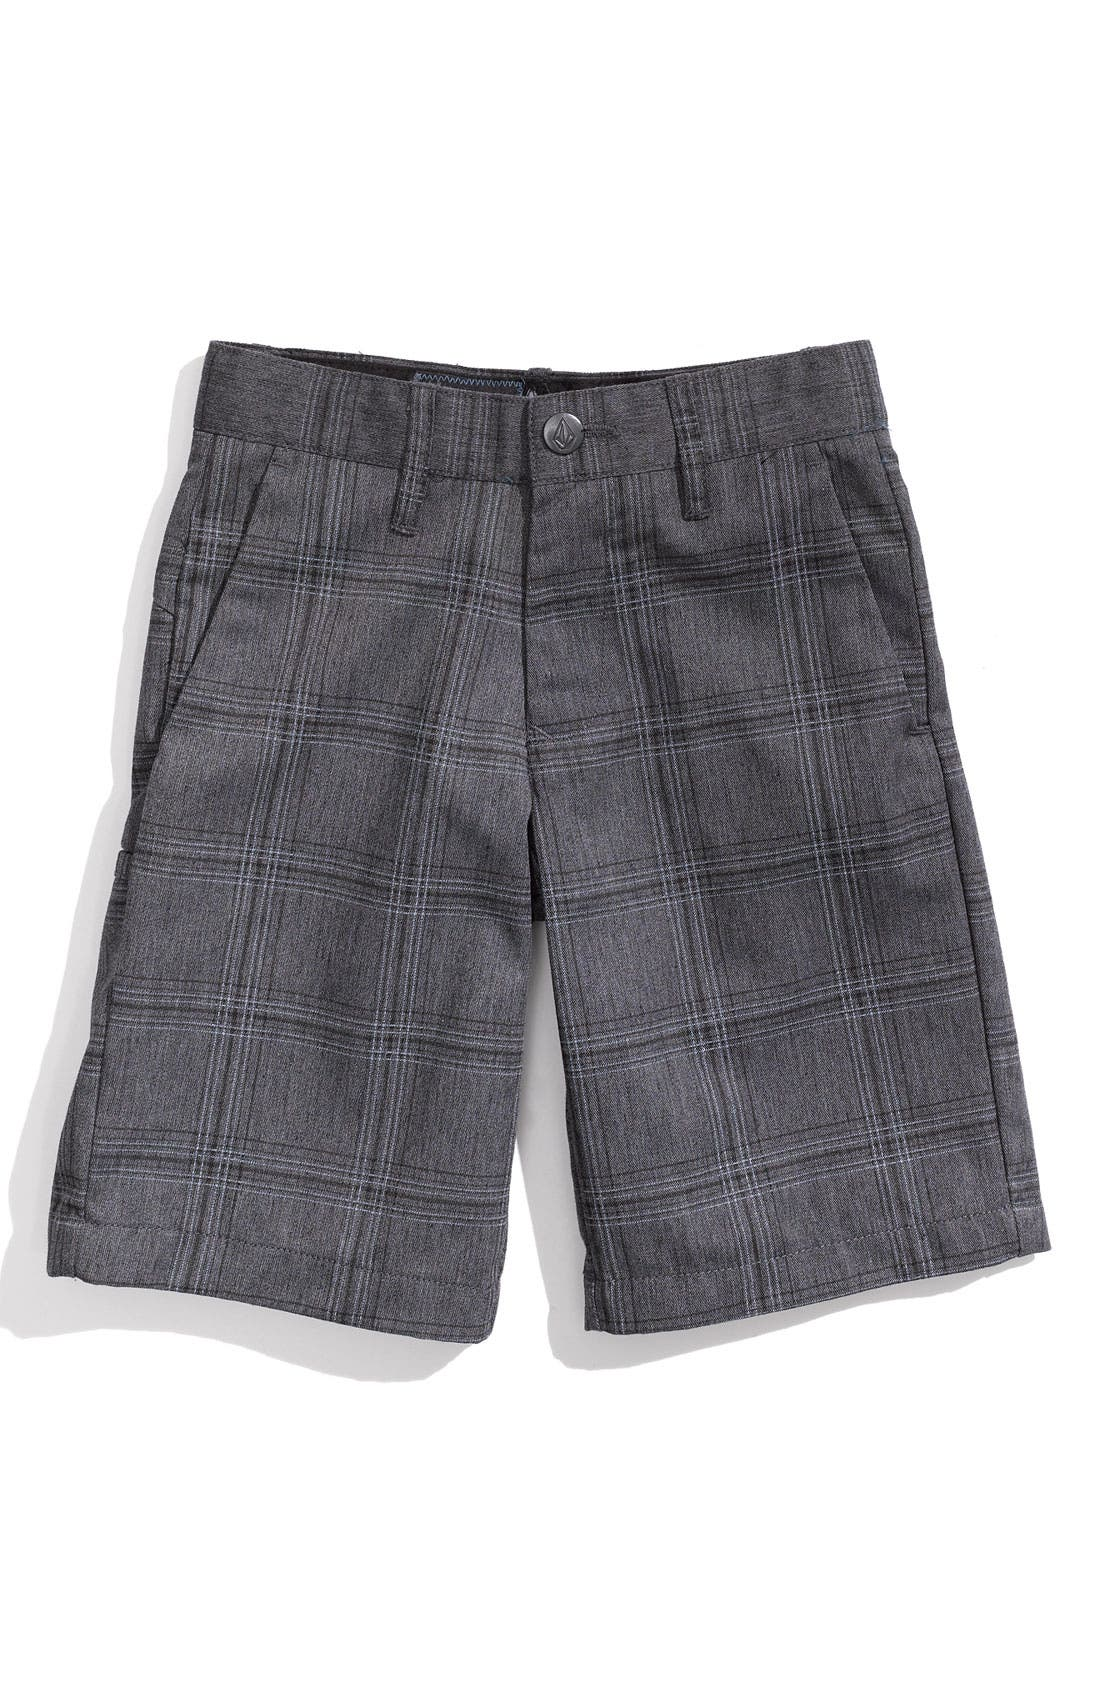 Main Image - Volcom Modern Plaid Shorts (Little Boys)